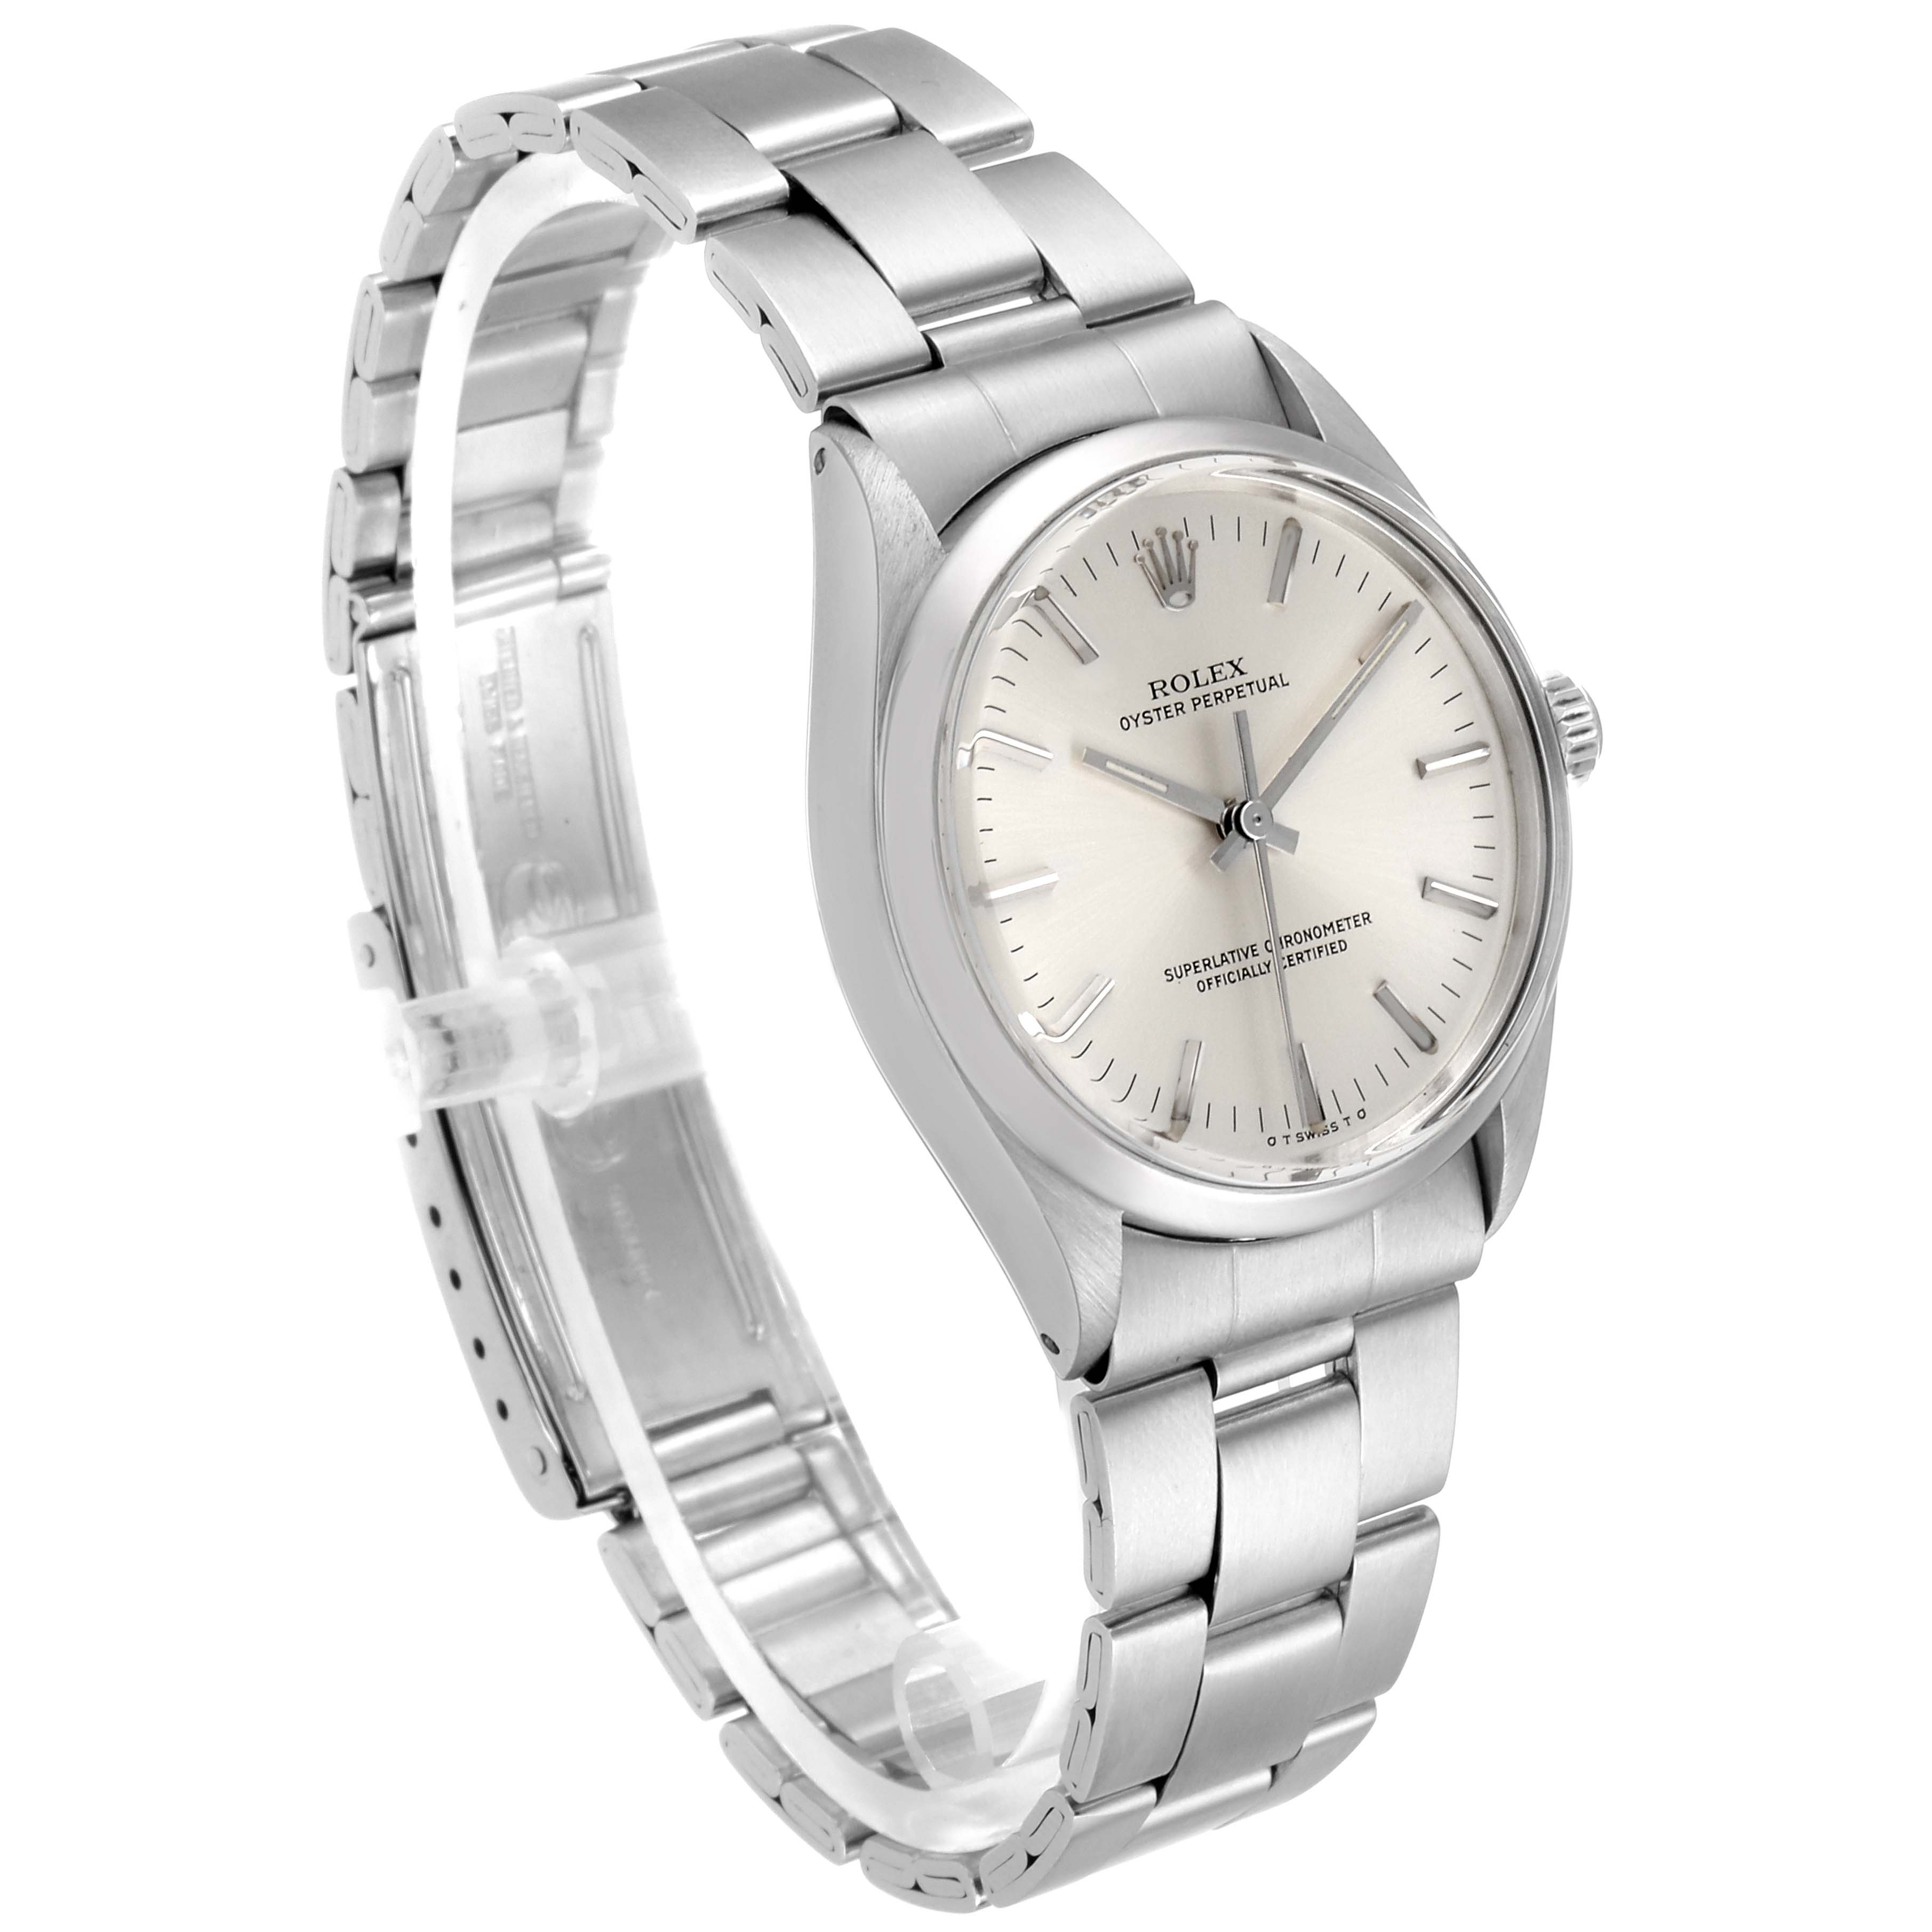 Rolex Oyster Perpetual Silver Dial Vintage Steel Mens Watch 1002 SwissWatchExpo